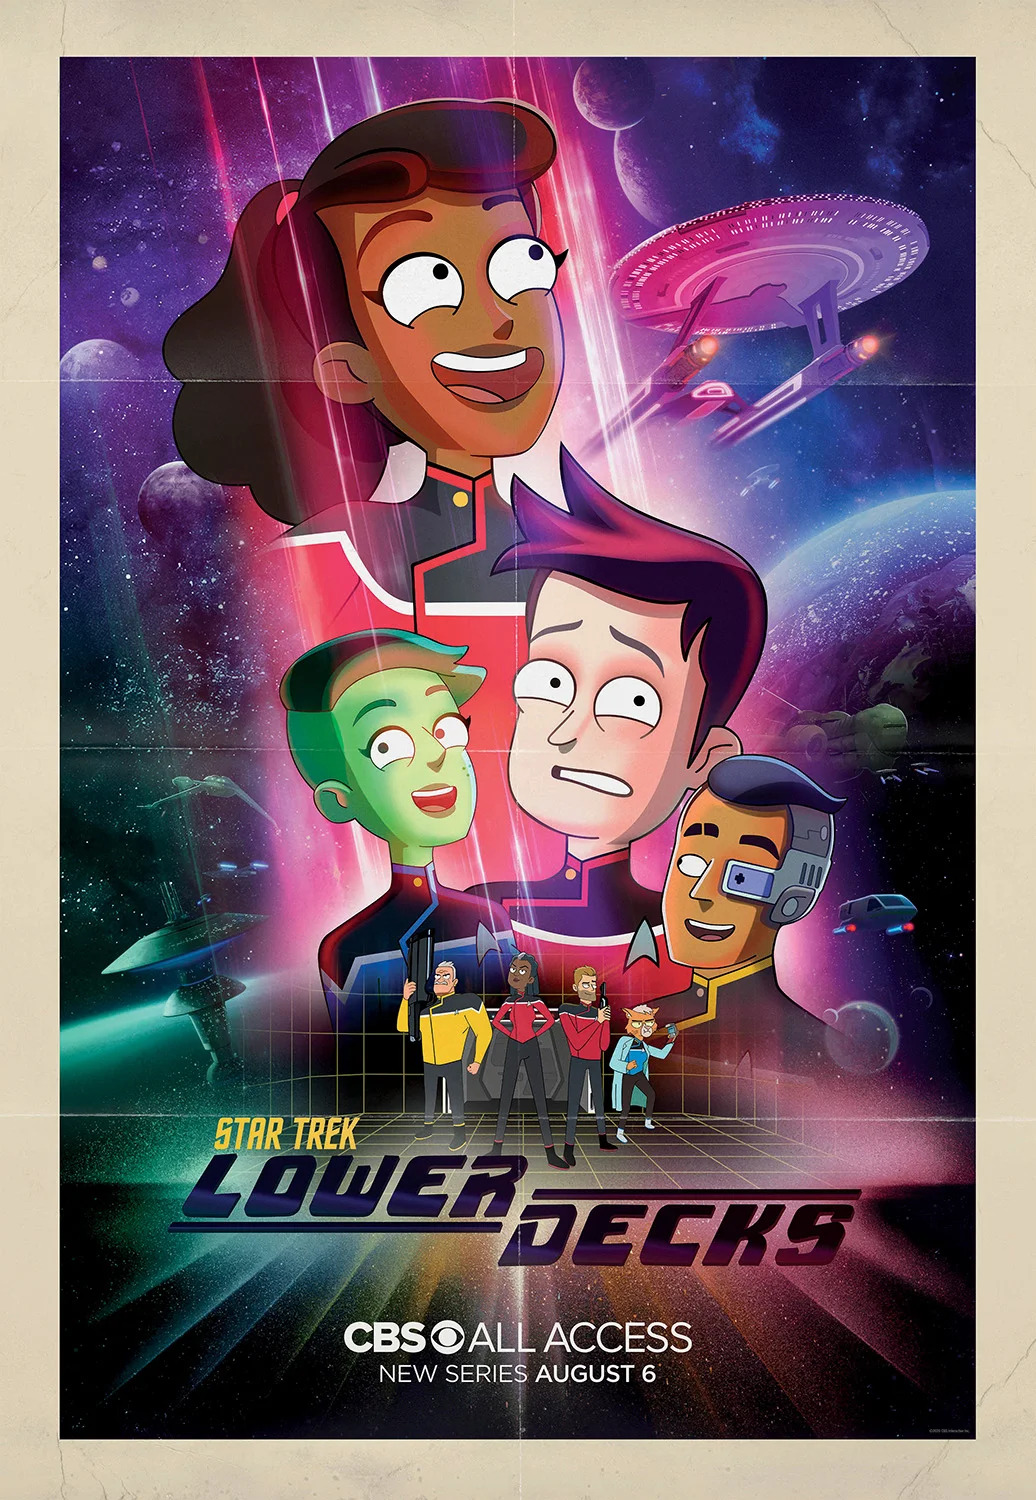 Star Trek: Lower Decks (2021) Hindi Season 1 Complete AMZN 700MB HDRip 480p Download